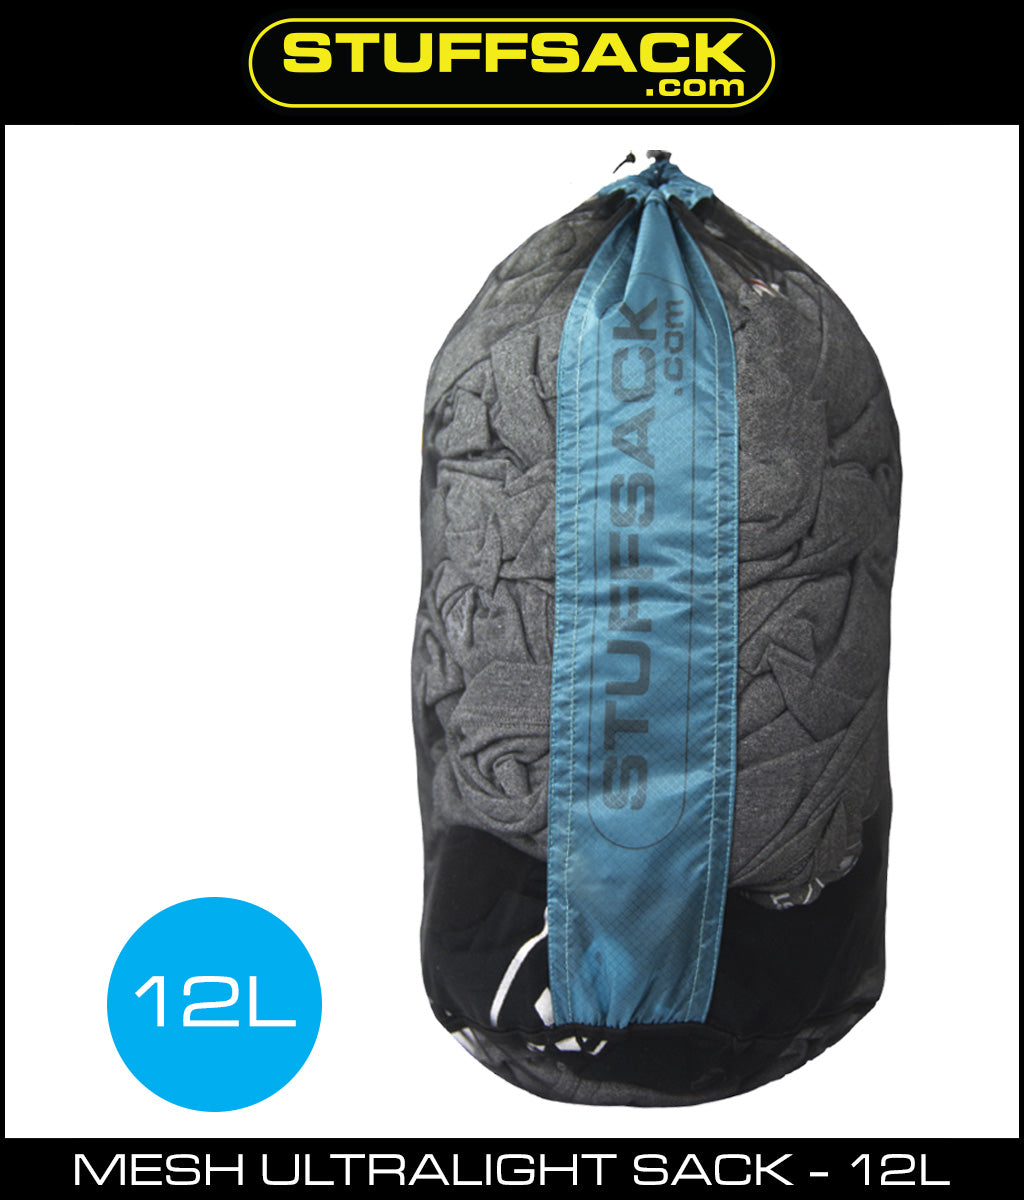 Stuffsack.com Mesh Ultralight Stuff Bag - 12L - Blue